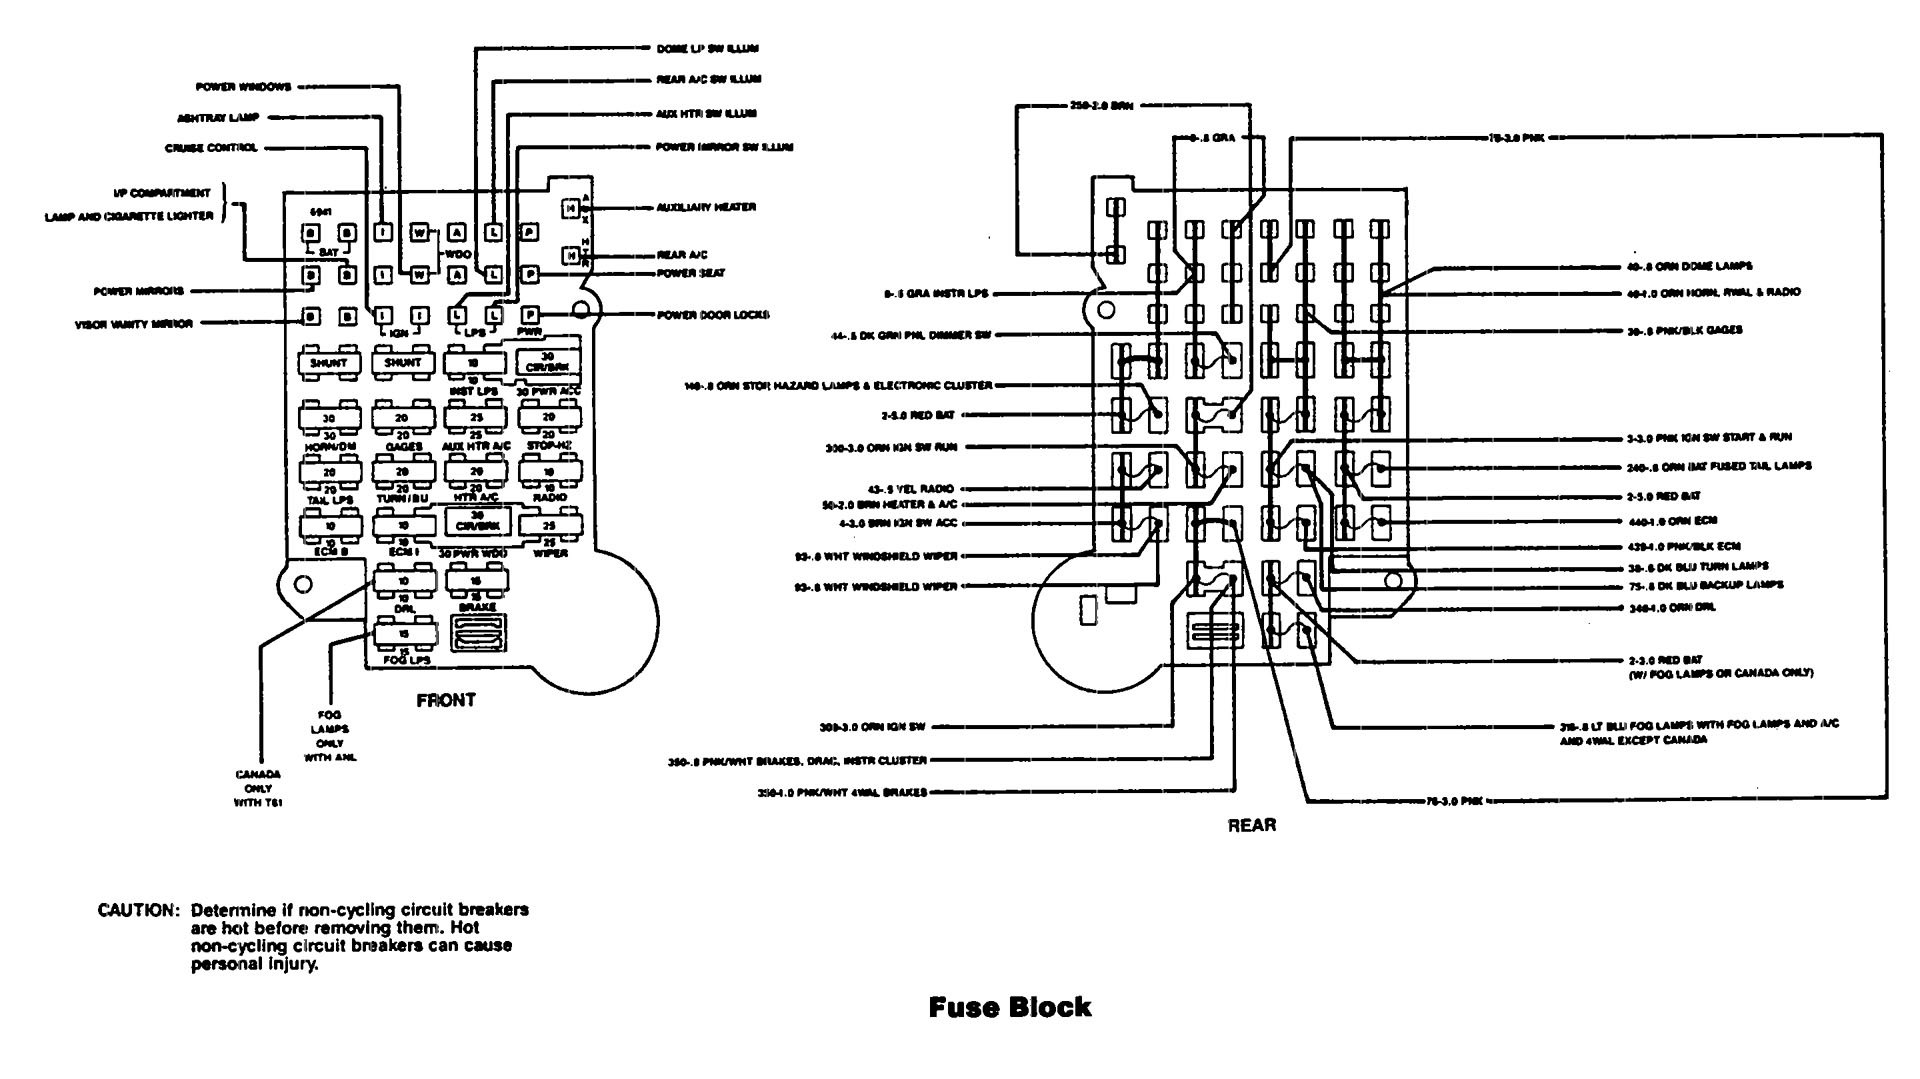 lasko fan wiring diagram  diagrams  auto fuse box diagram